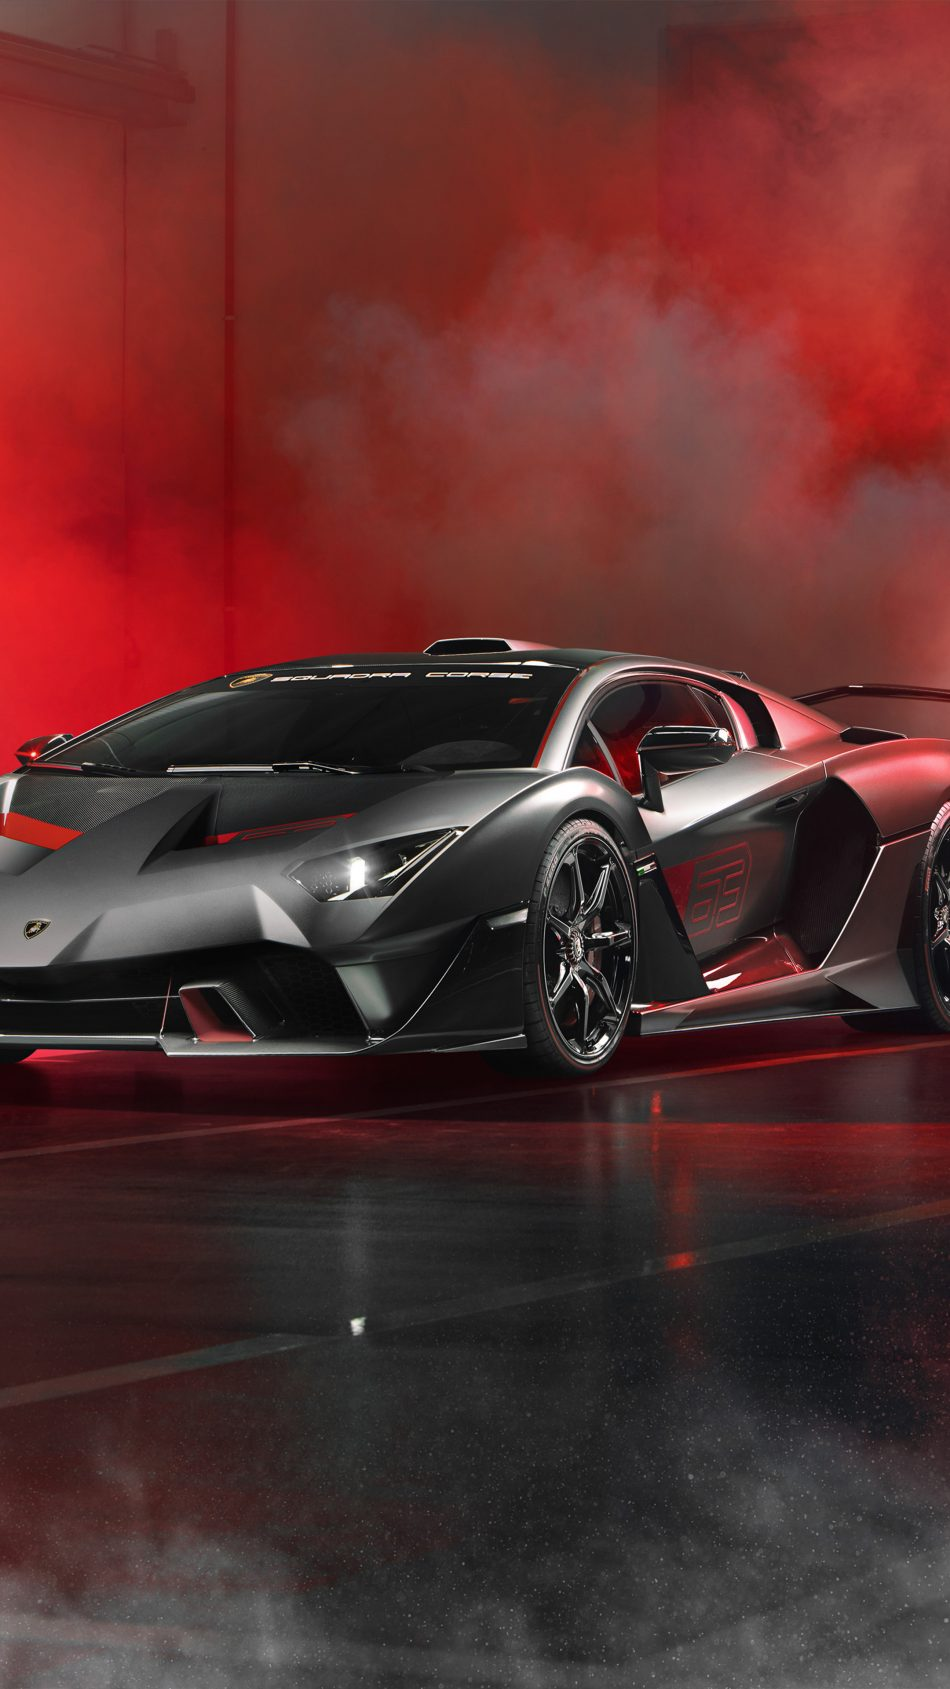 Download Lamborghini Sc18 Hyper Car 2019 Free Pure 4k Ultra Hd